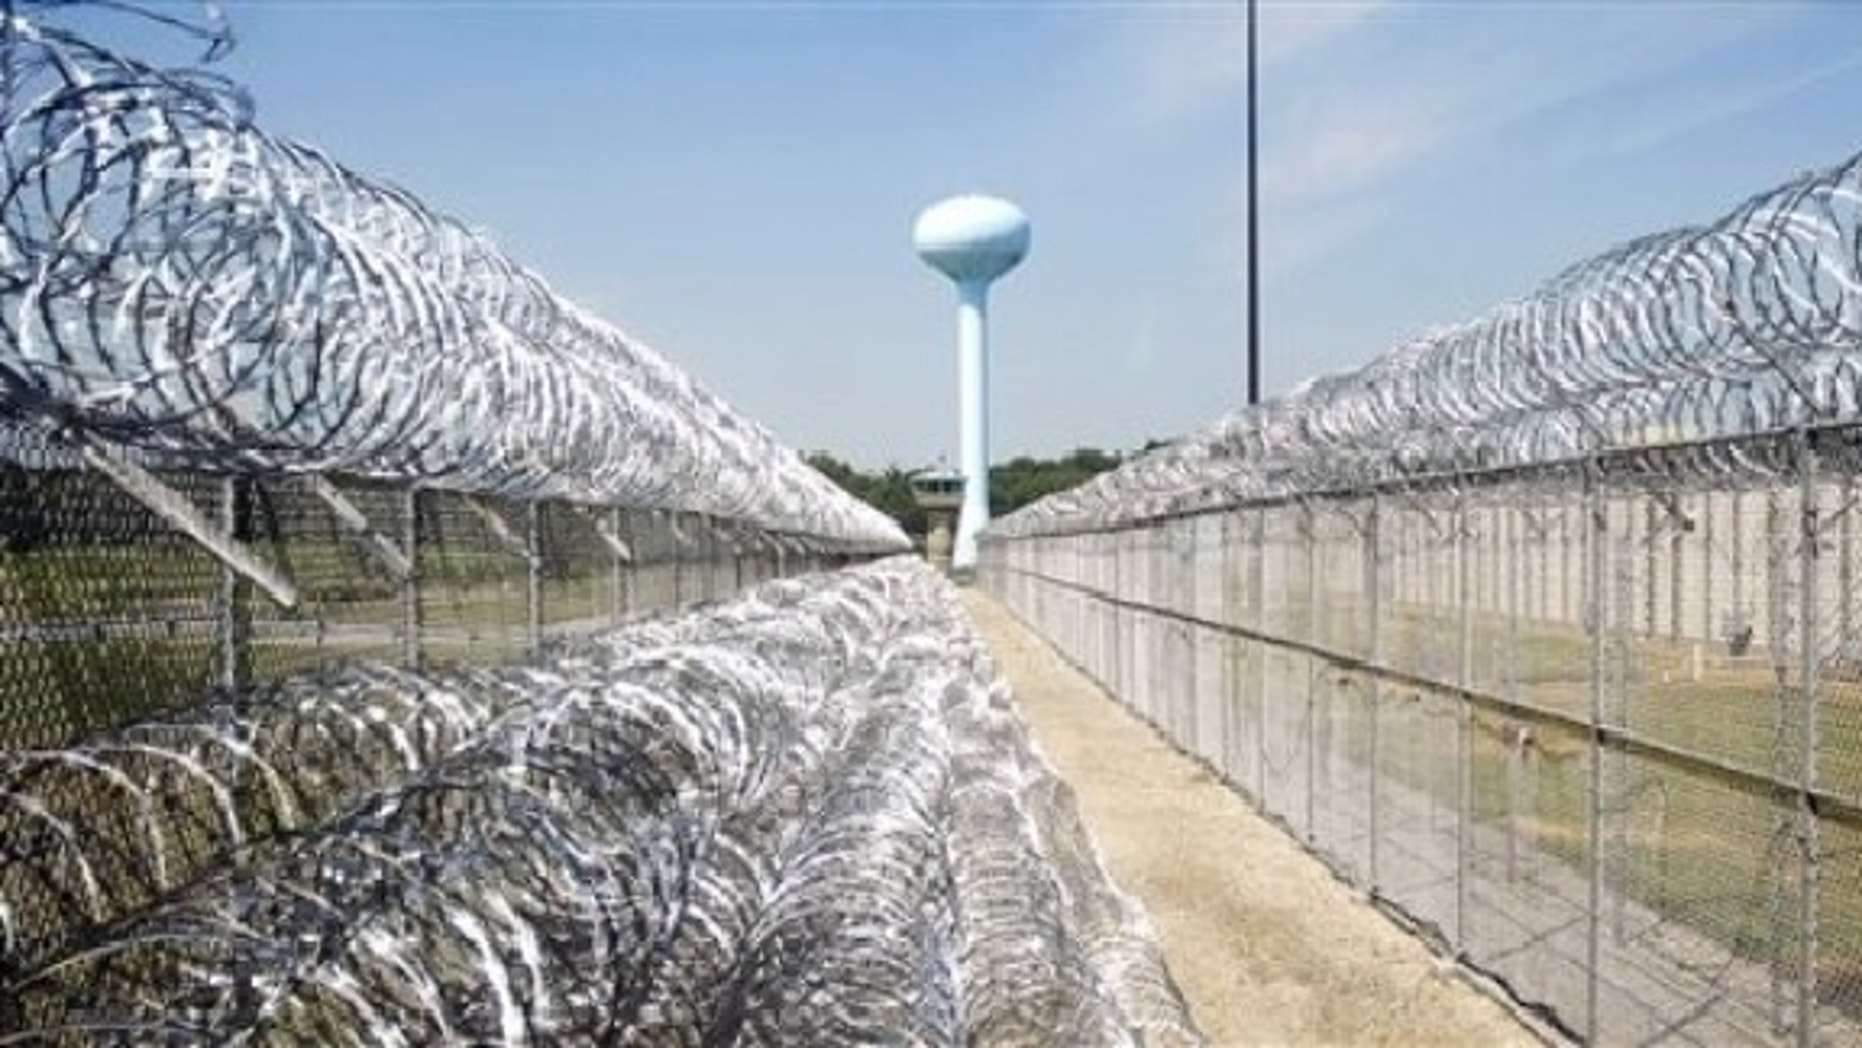 This Aug. 19, 2008, photo shows the inner and outer security fence surrounding the medium security federal prison in Marion, Ill. Once the nation's securest prison, the federal lockup near this southern Illinois town has housed everyone from spies to a Columbian druglord to dapper mob boss John Gotti. (AP Photo/The Southern, Steve Jahnke)